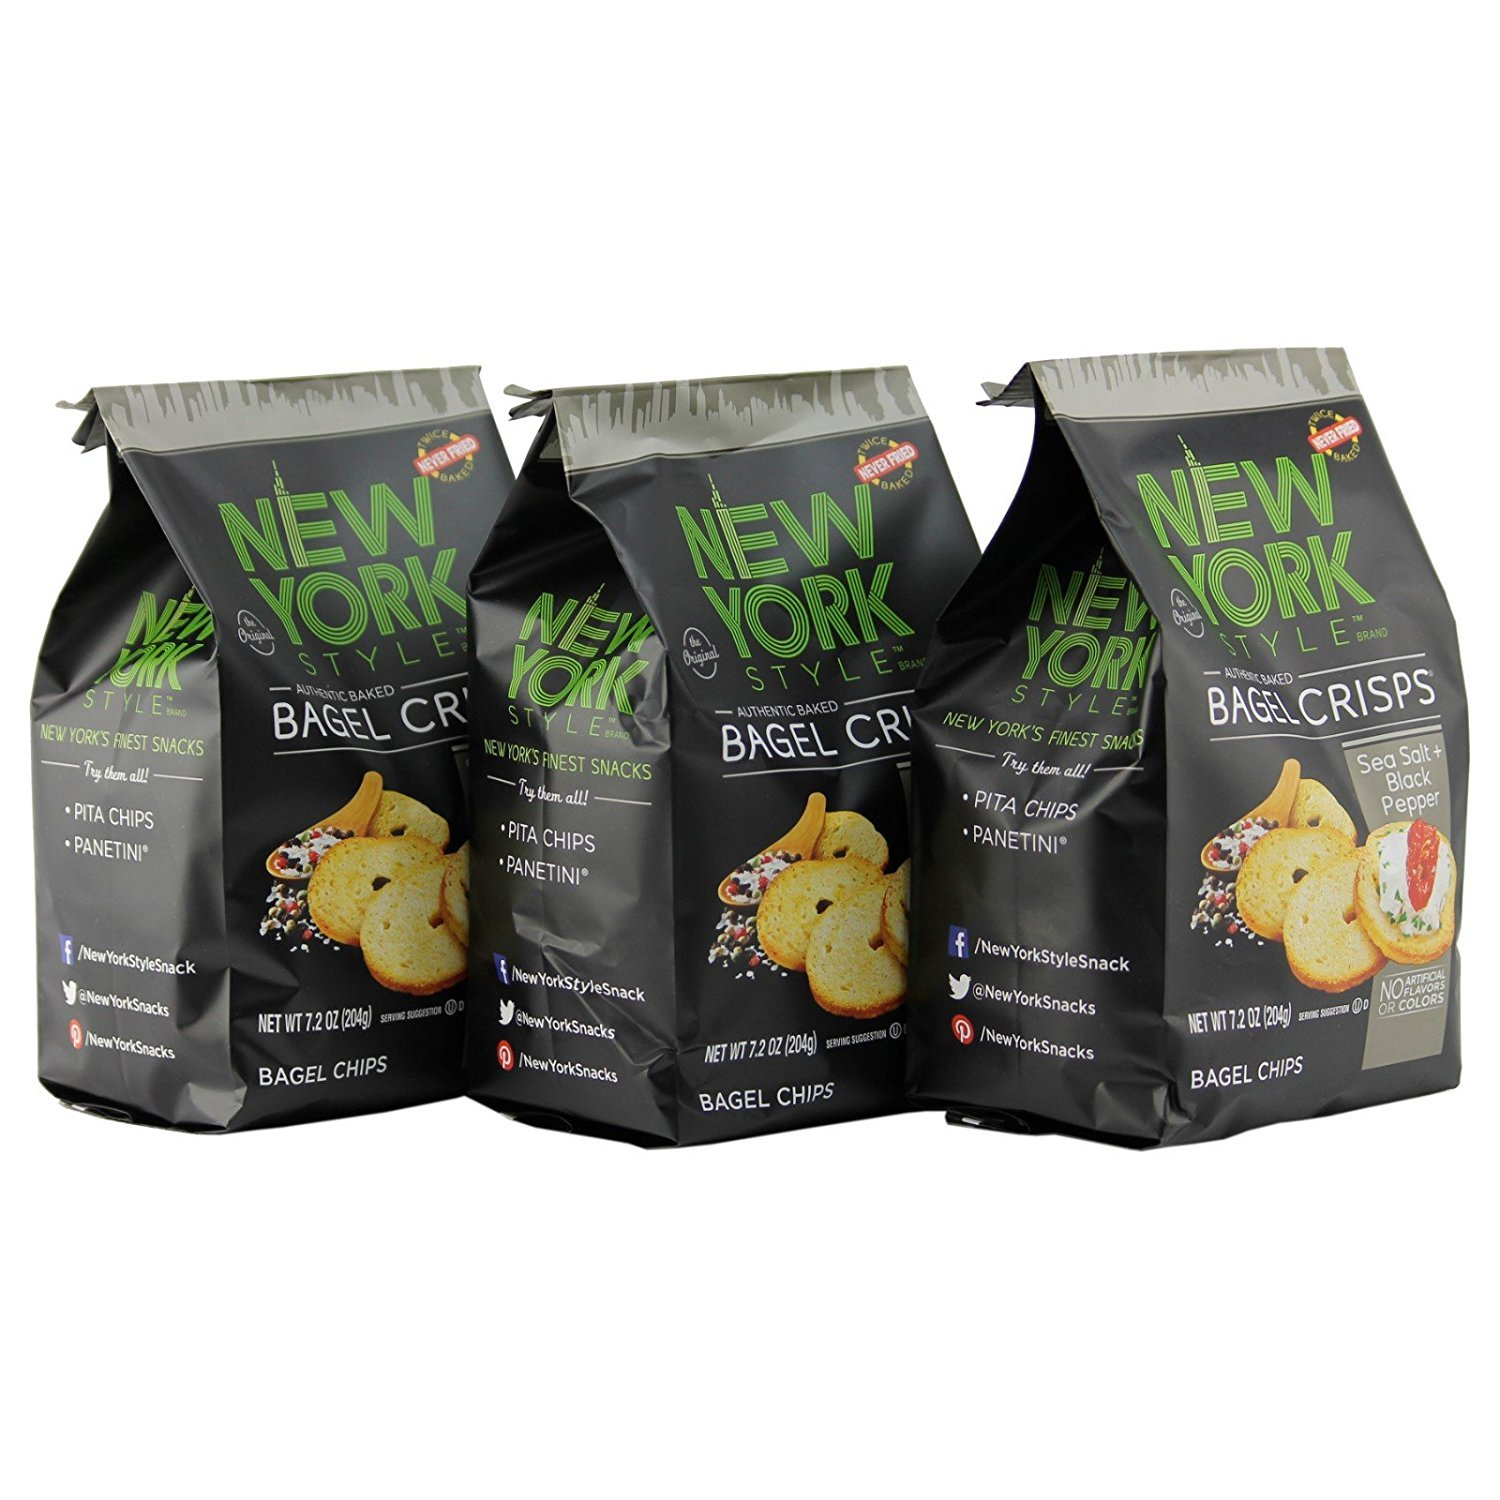 New York Style Bagel Crisps SEA SALT & CRACKED PEPPER, 7.2 Ounce - (Pack of 3) Add Some Extra Crunch